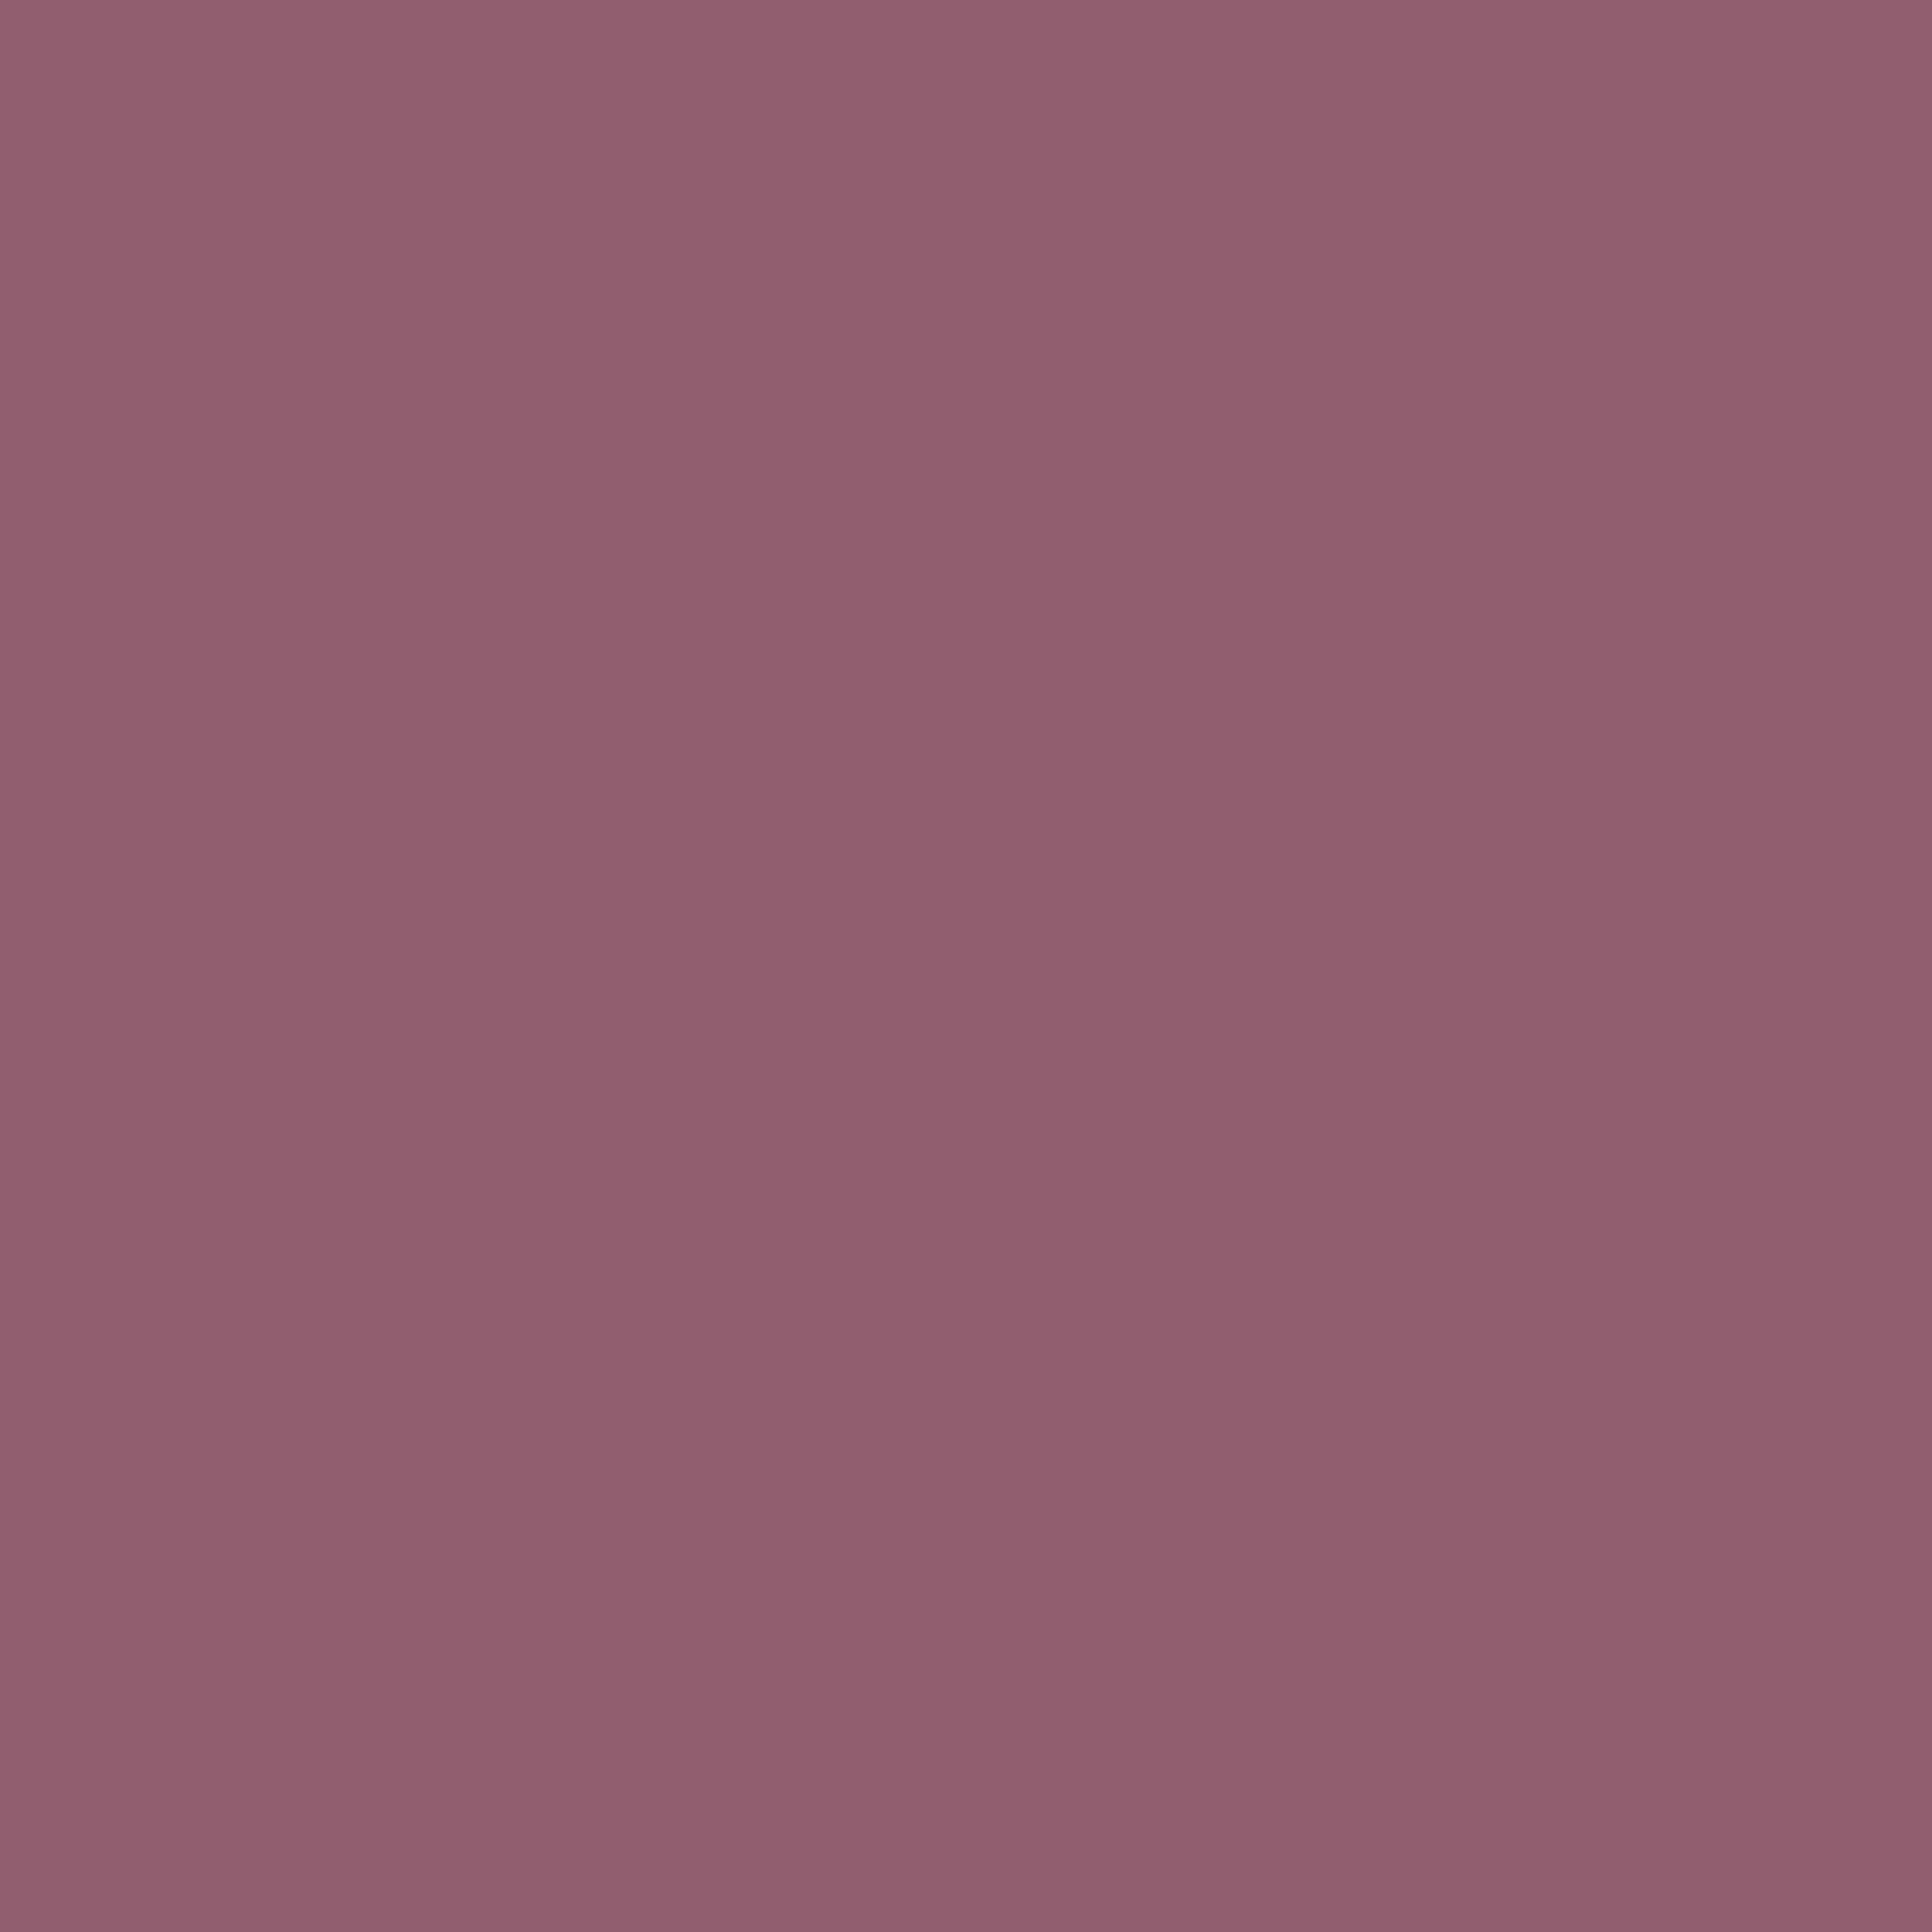 3600x3600 Raspberry Glace Solid Color Background